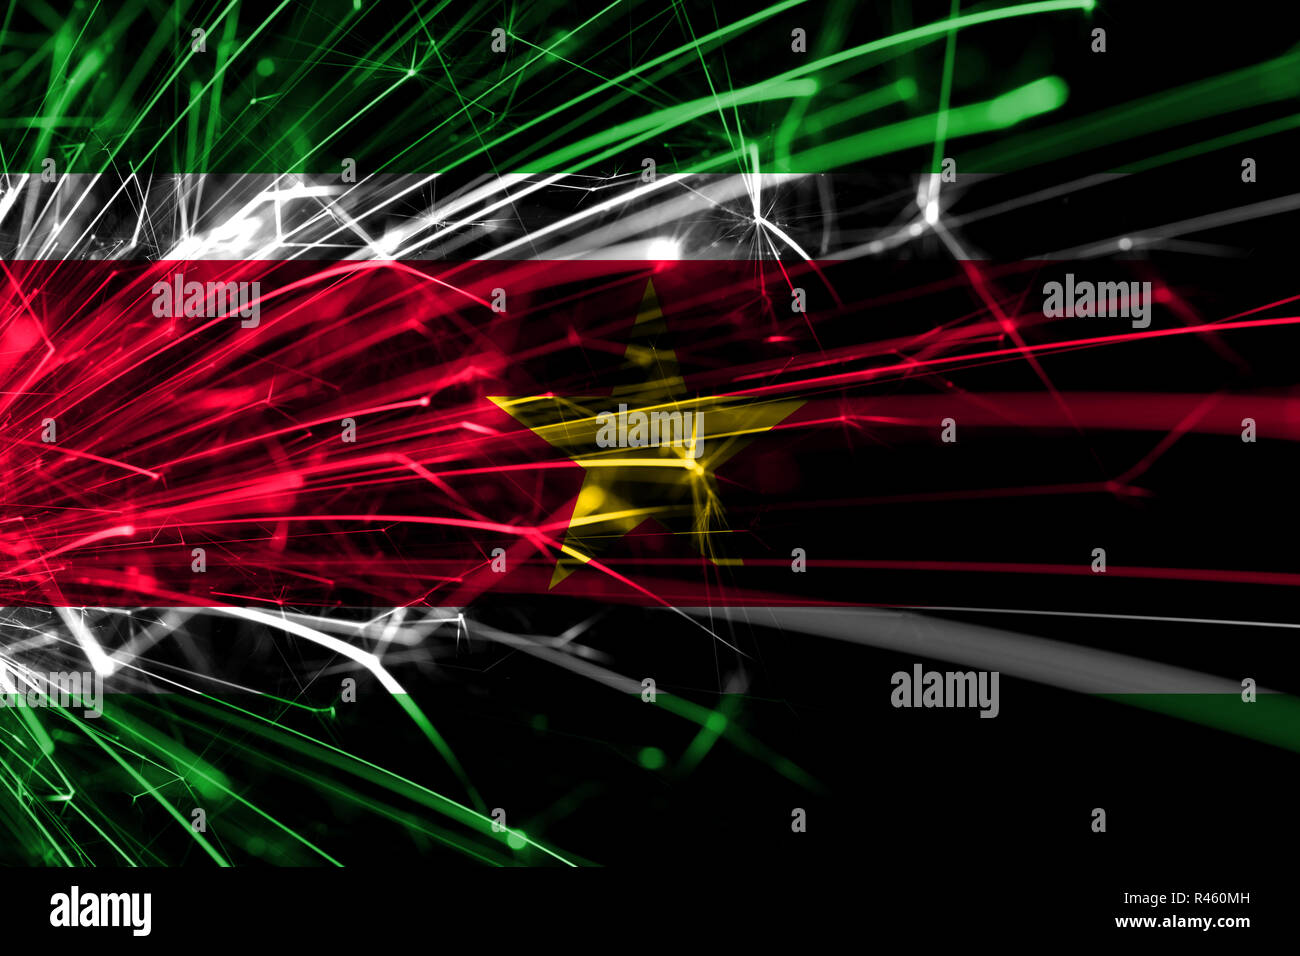 Suriname abstract fireworks sparkling flag. New Year, Christmas and National day concept - Stock Image